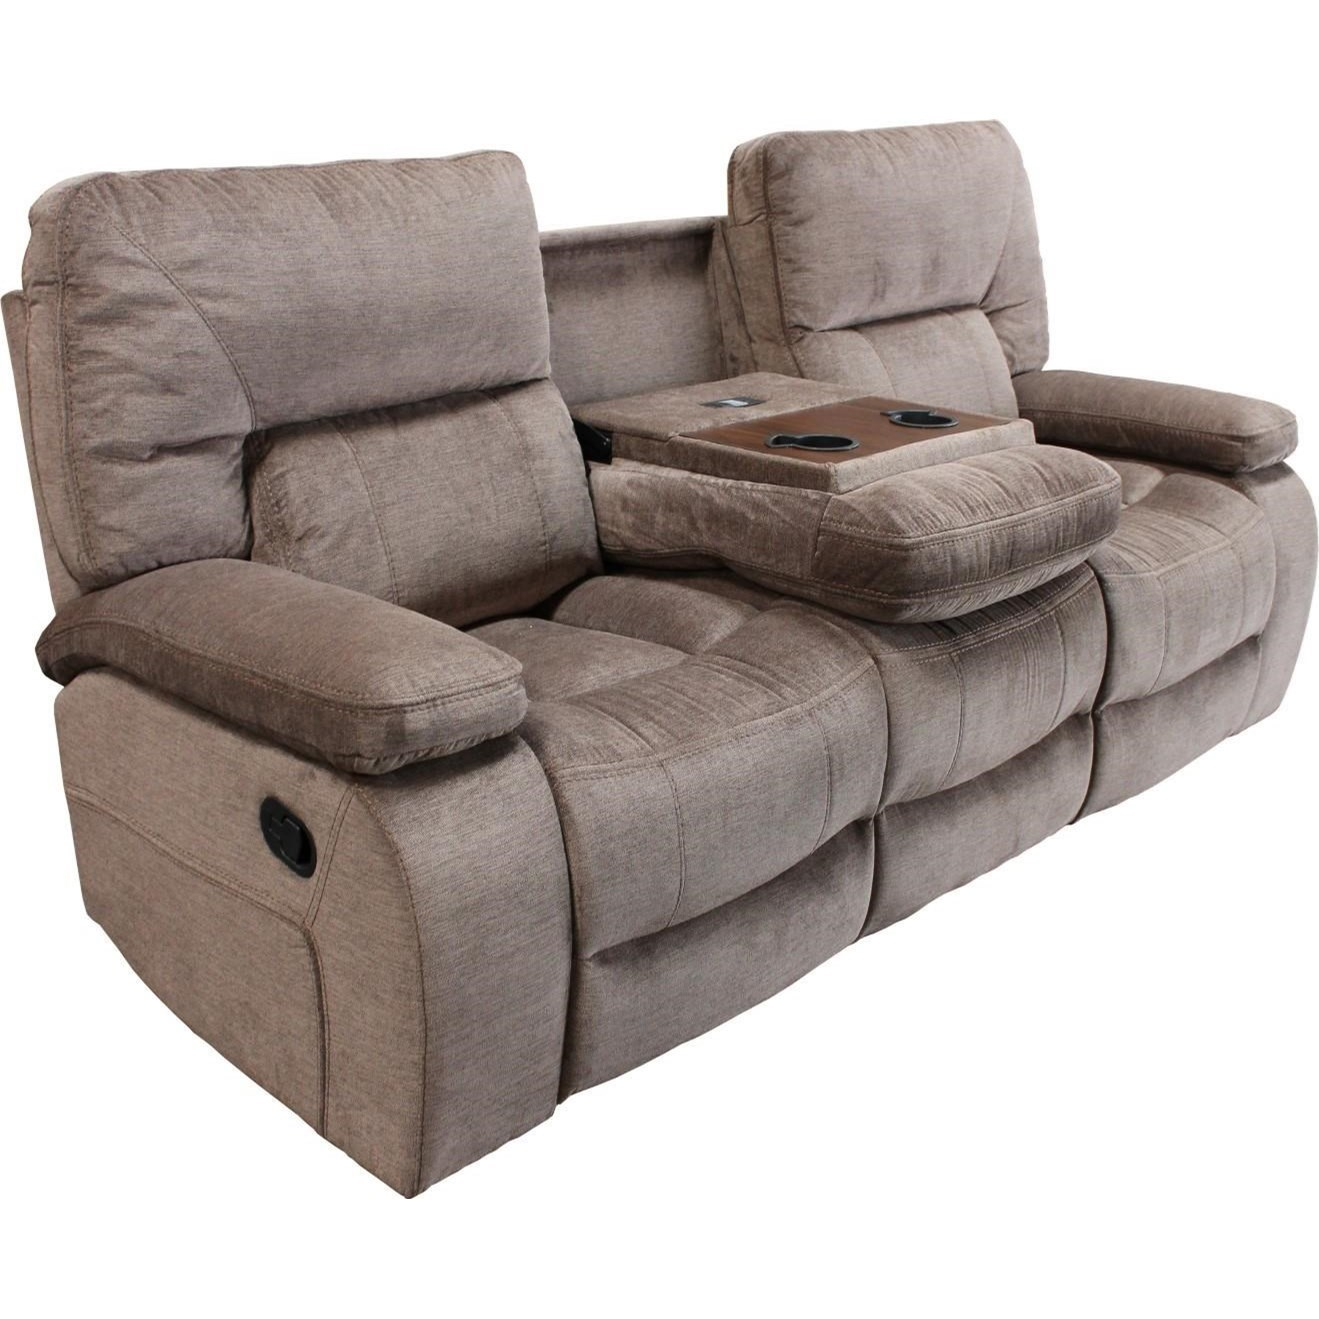 Parker Living Chapman Mcha 834 Kon Casual Dual Reclining Sofa With Drop Down Center Console Cupholders Hudson S Furniture Reclining Sofas